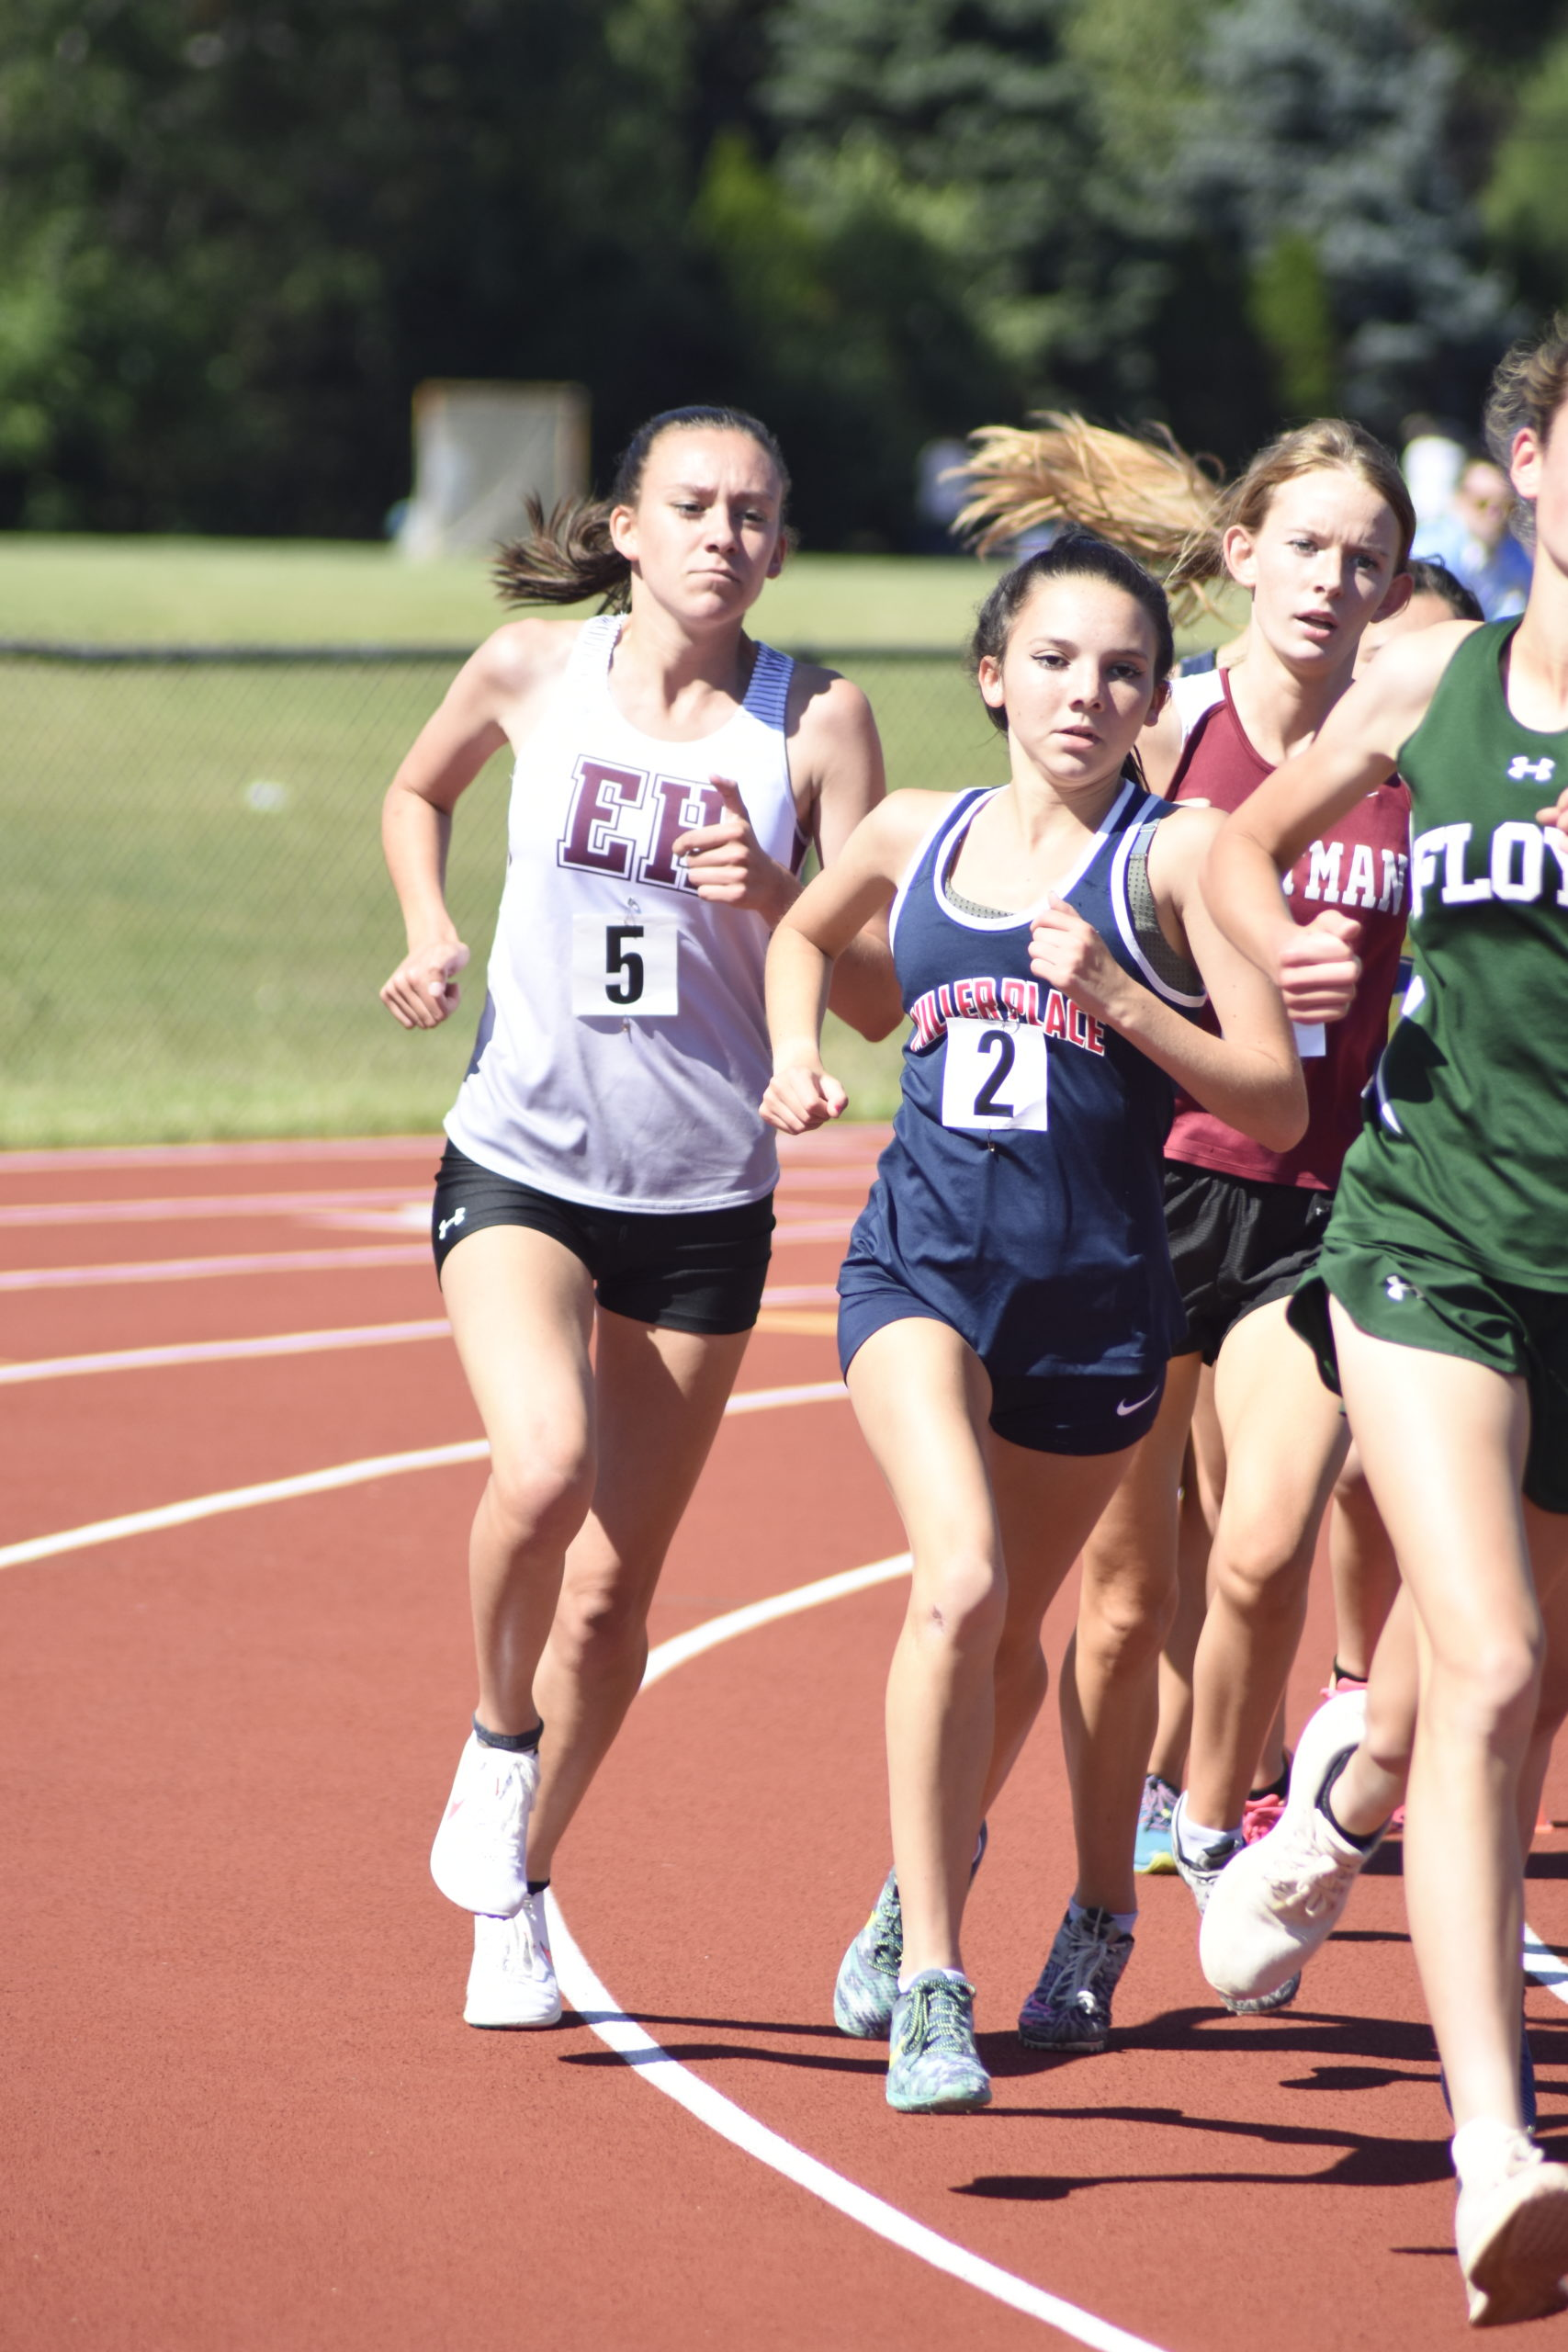 Pierson senior Penelope Greene placed third in the 3,000-meter race and sixth in the 1,500-meter race at counties.